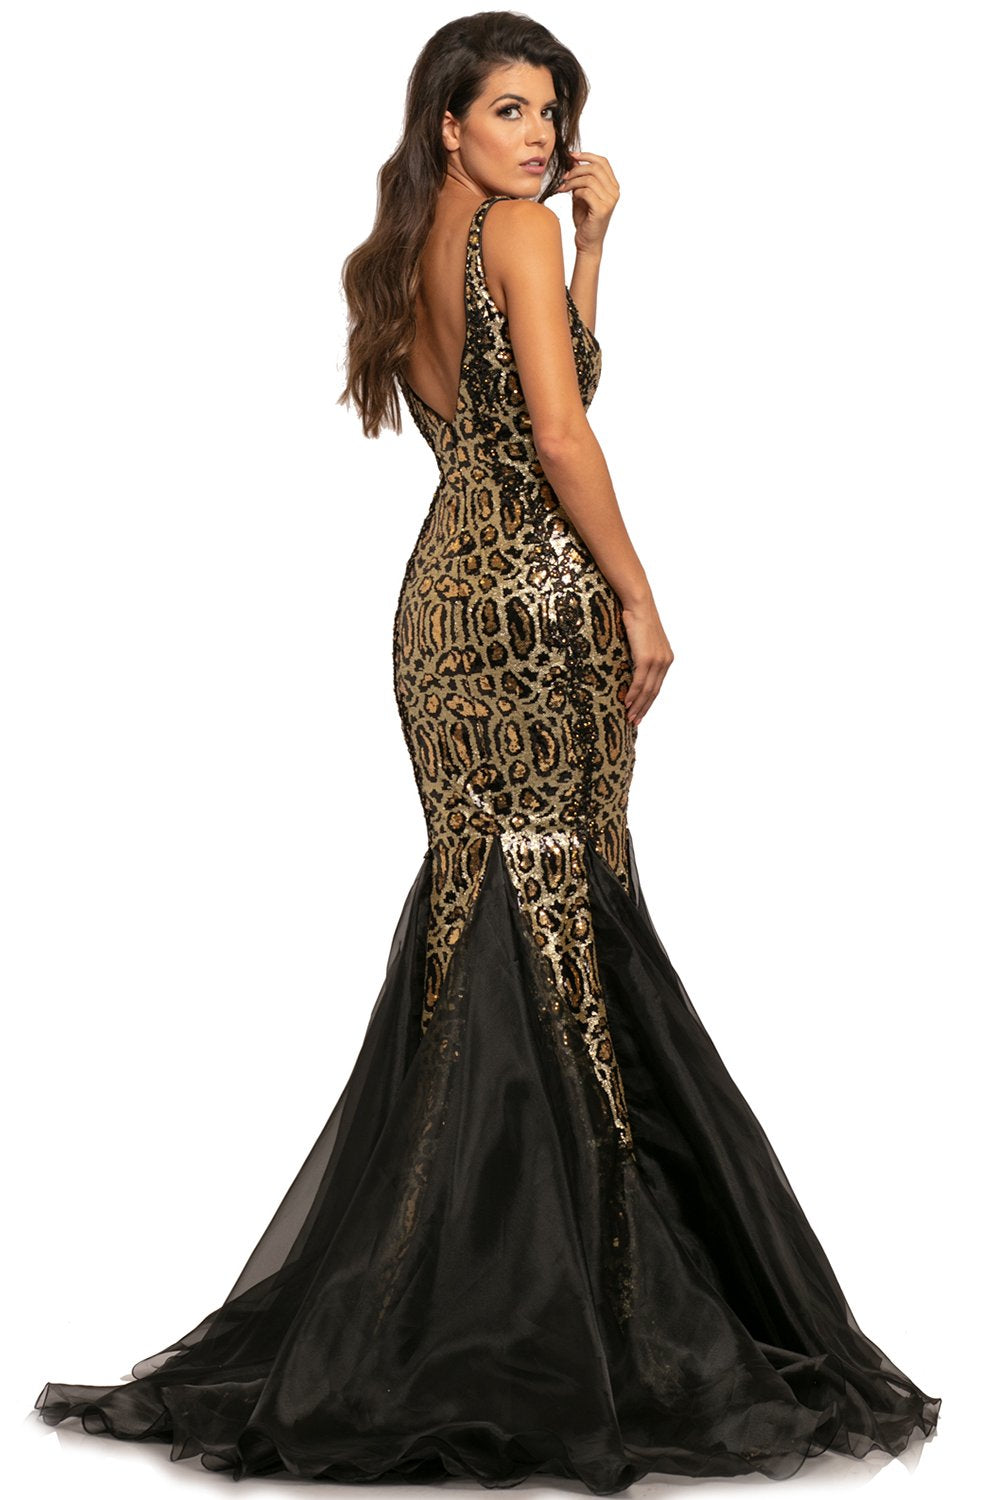 Johnathan Kayne - 2026 Sequined Deep V-neck Mermaid Dress In Gold and Black